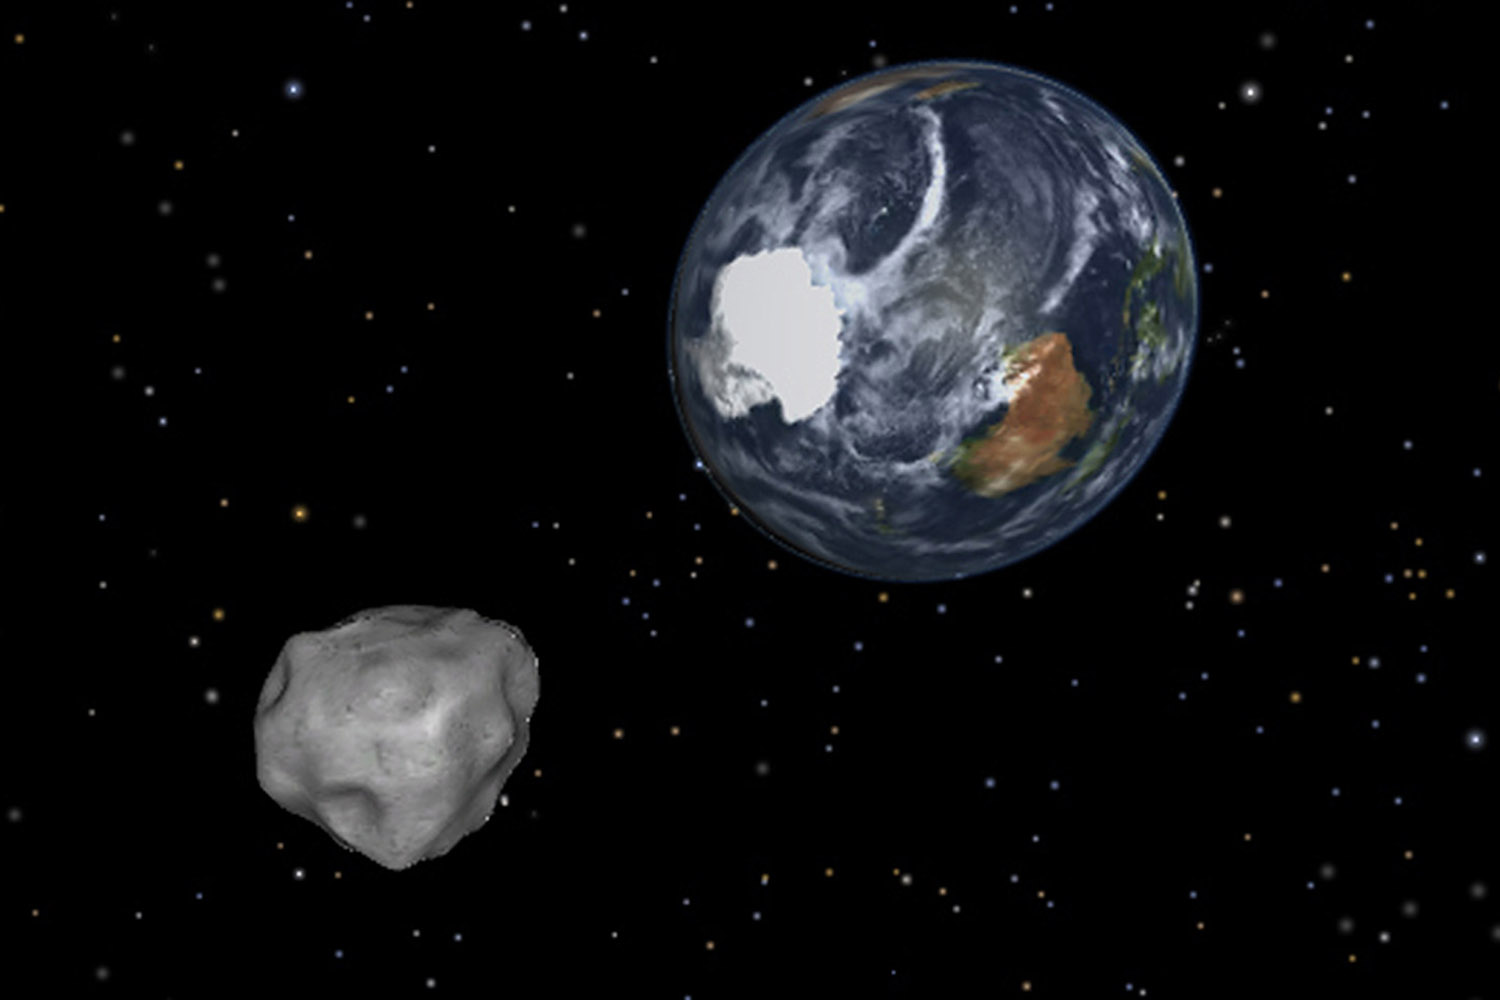 asteroid miles from earth - photo #6